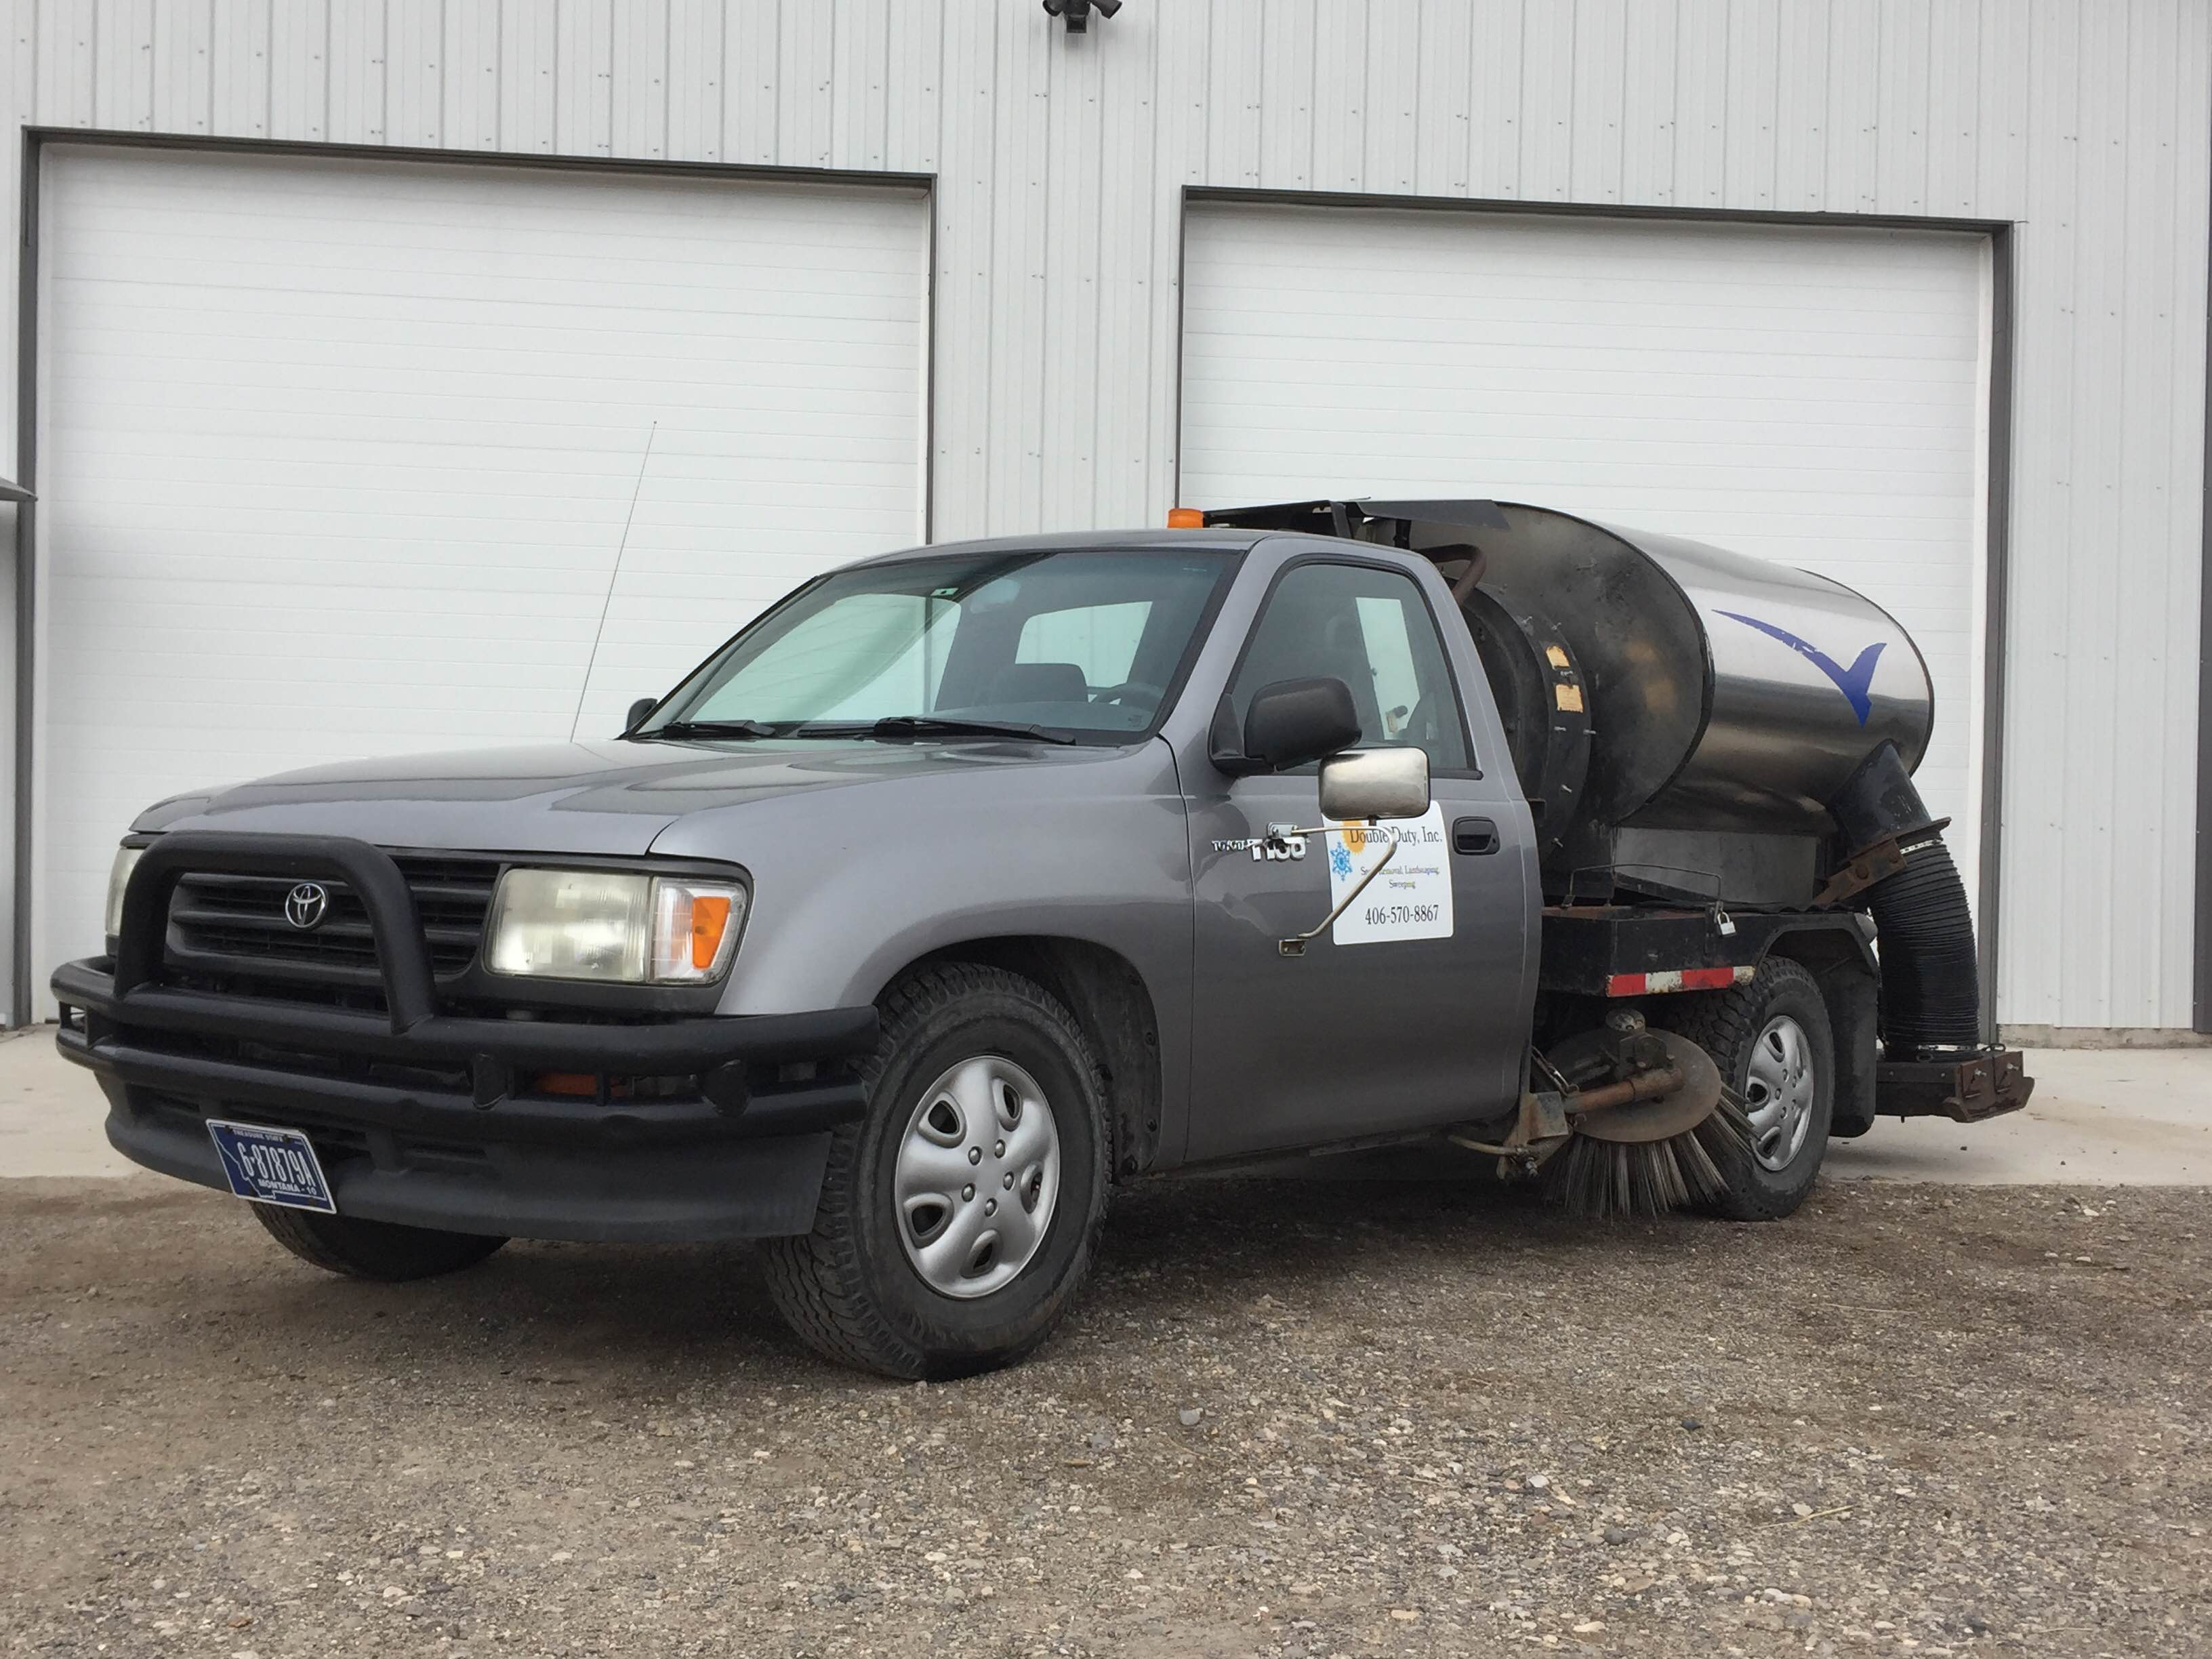 Street Sweeping Services in Bozeman, MT